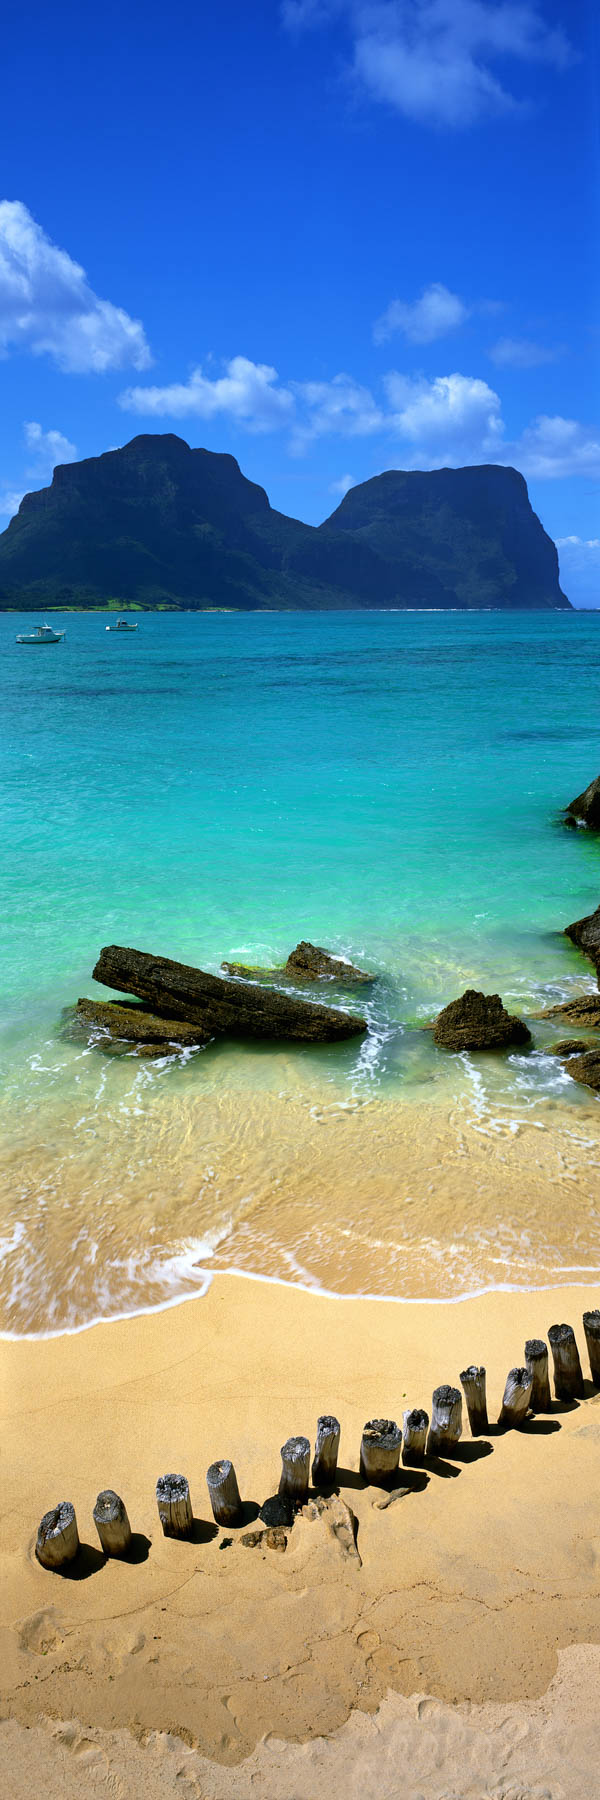 The tranquil, turquoise waters of Lord Howe Island, NSW, Australia.